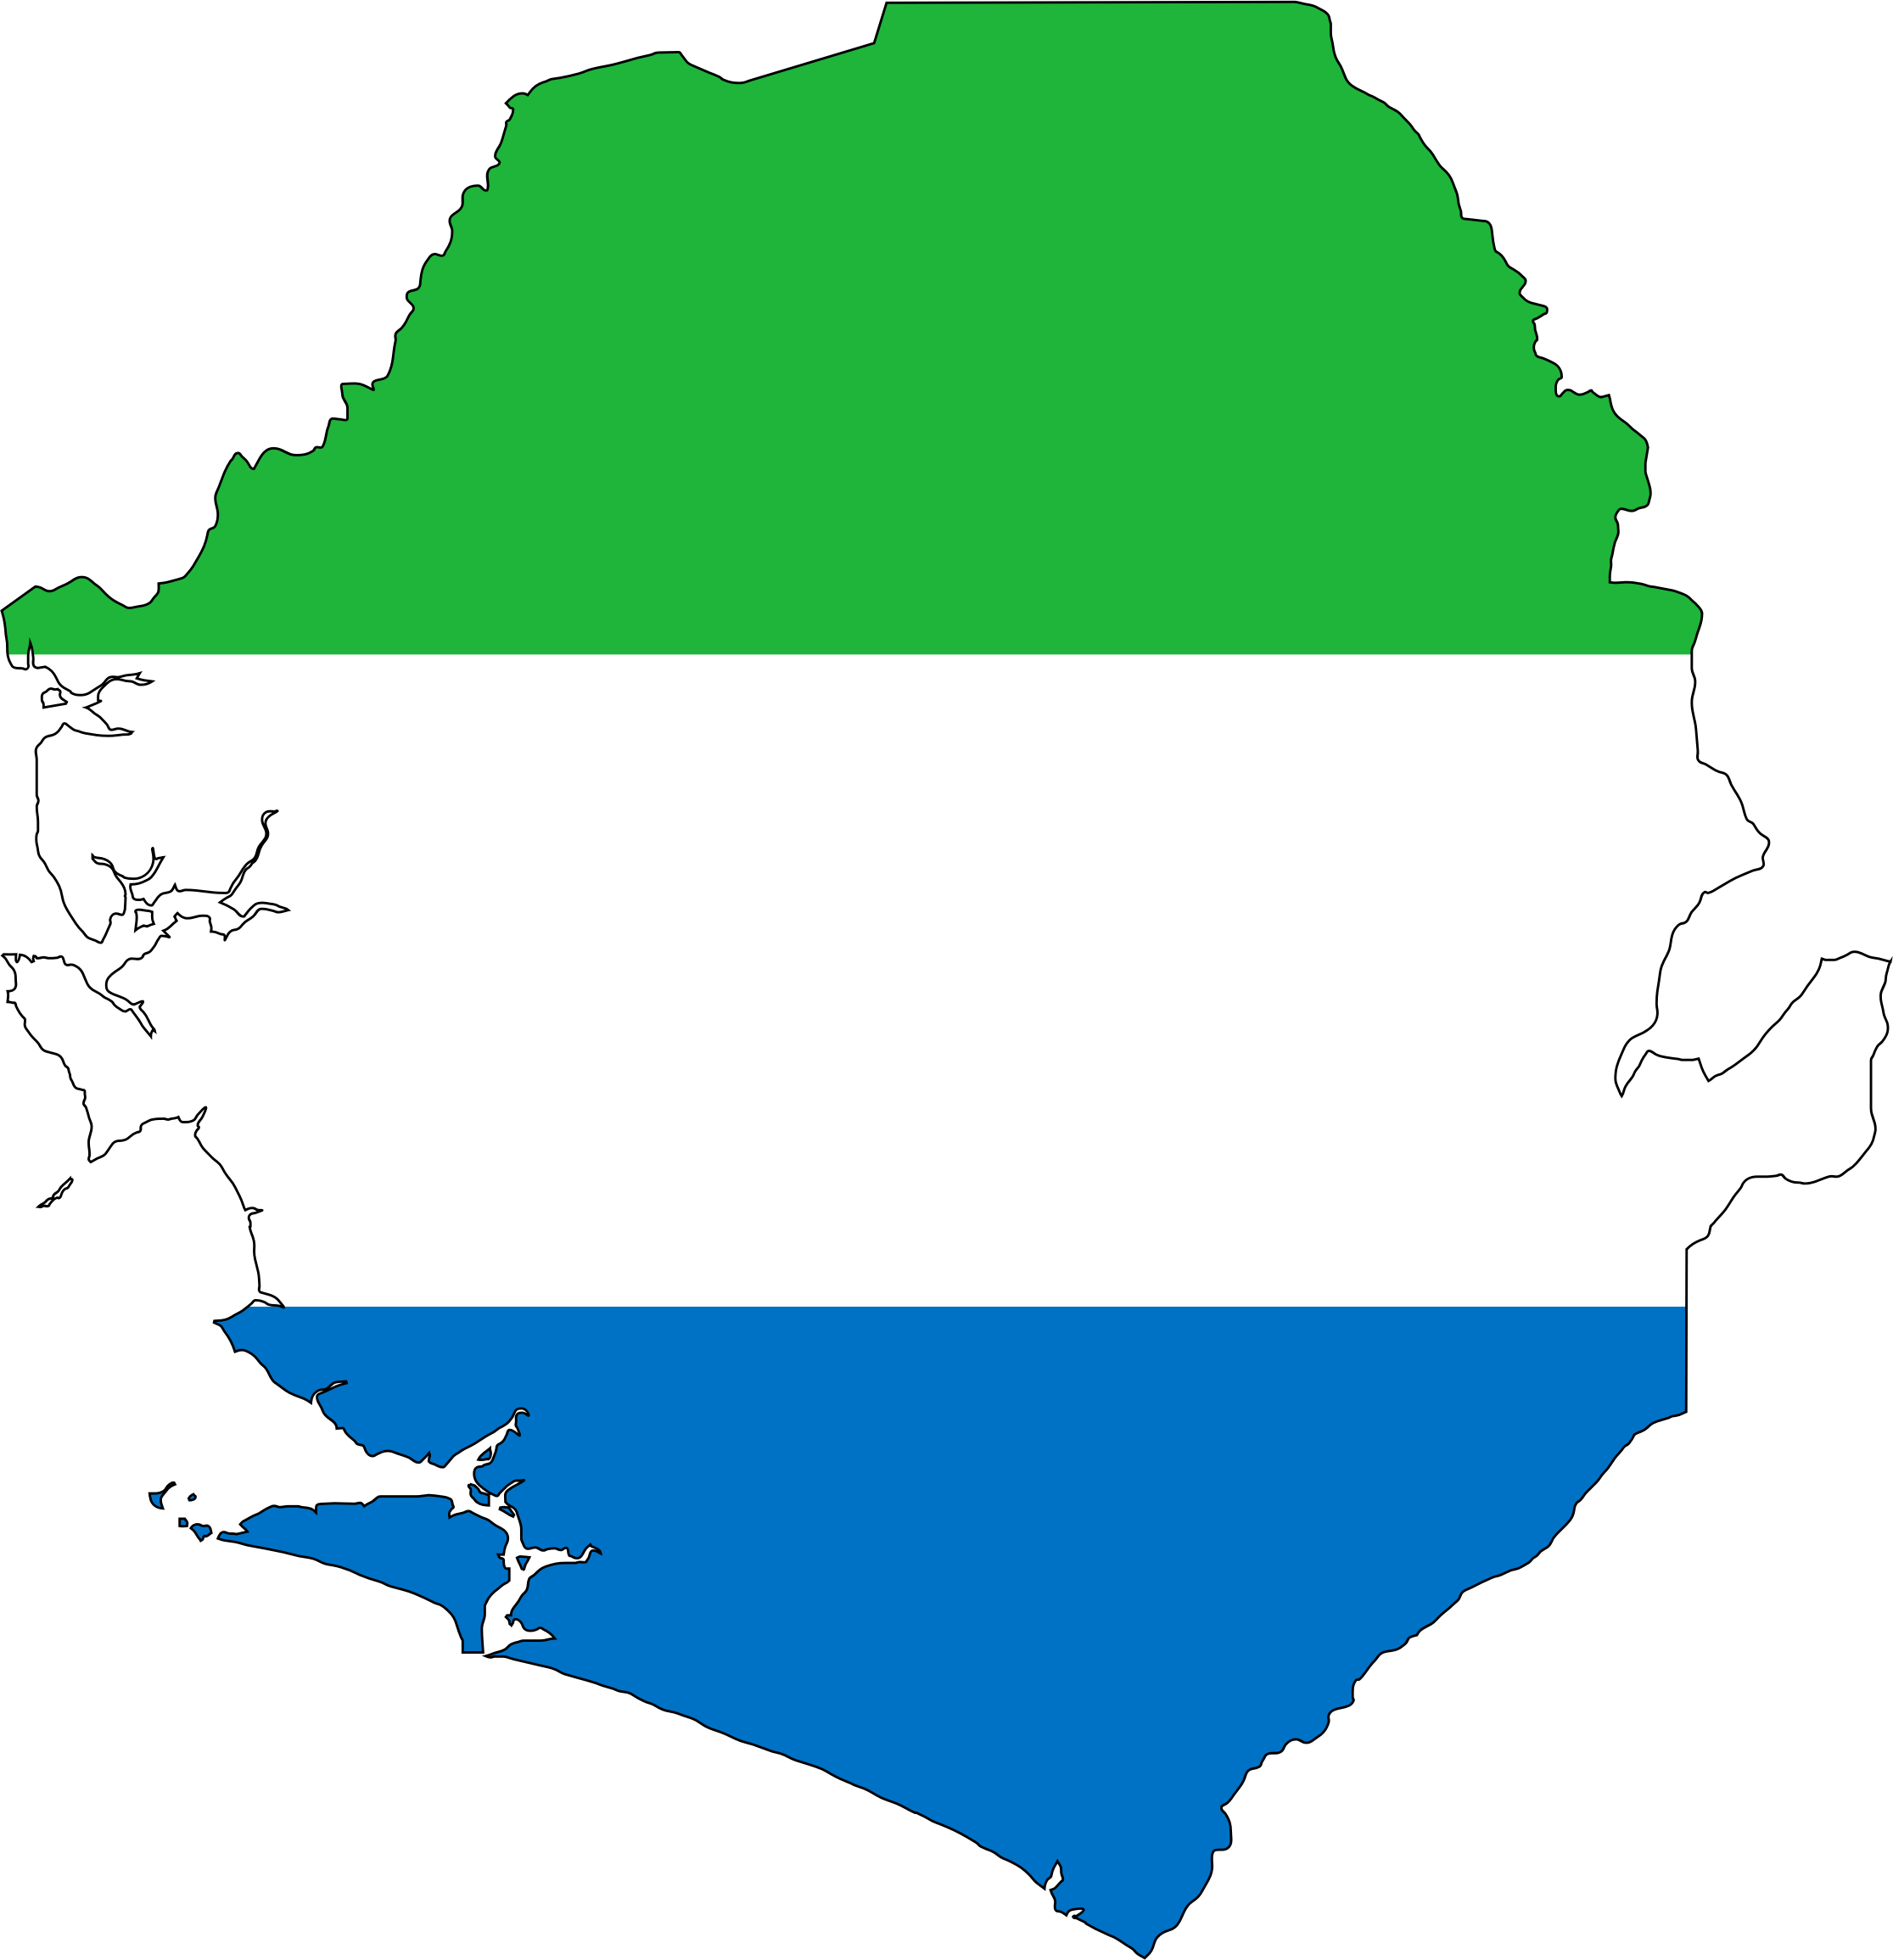 Sierra Leone Flag Map With Stroke by GDJ